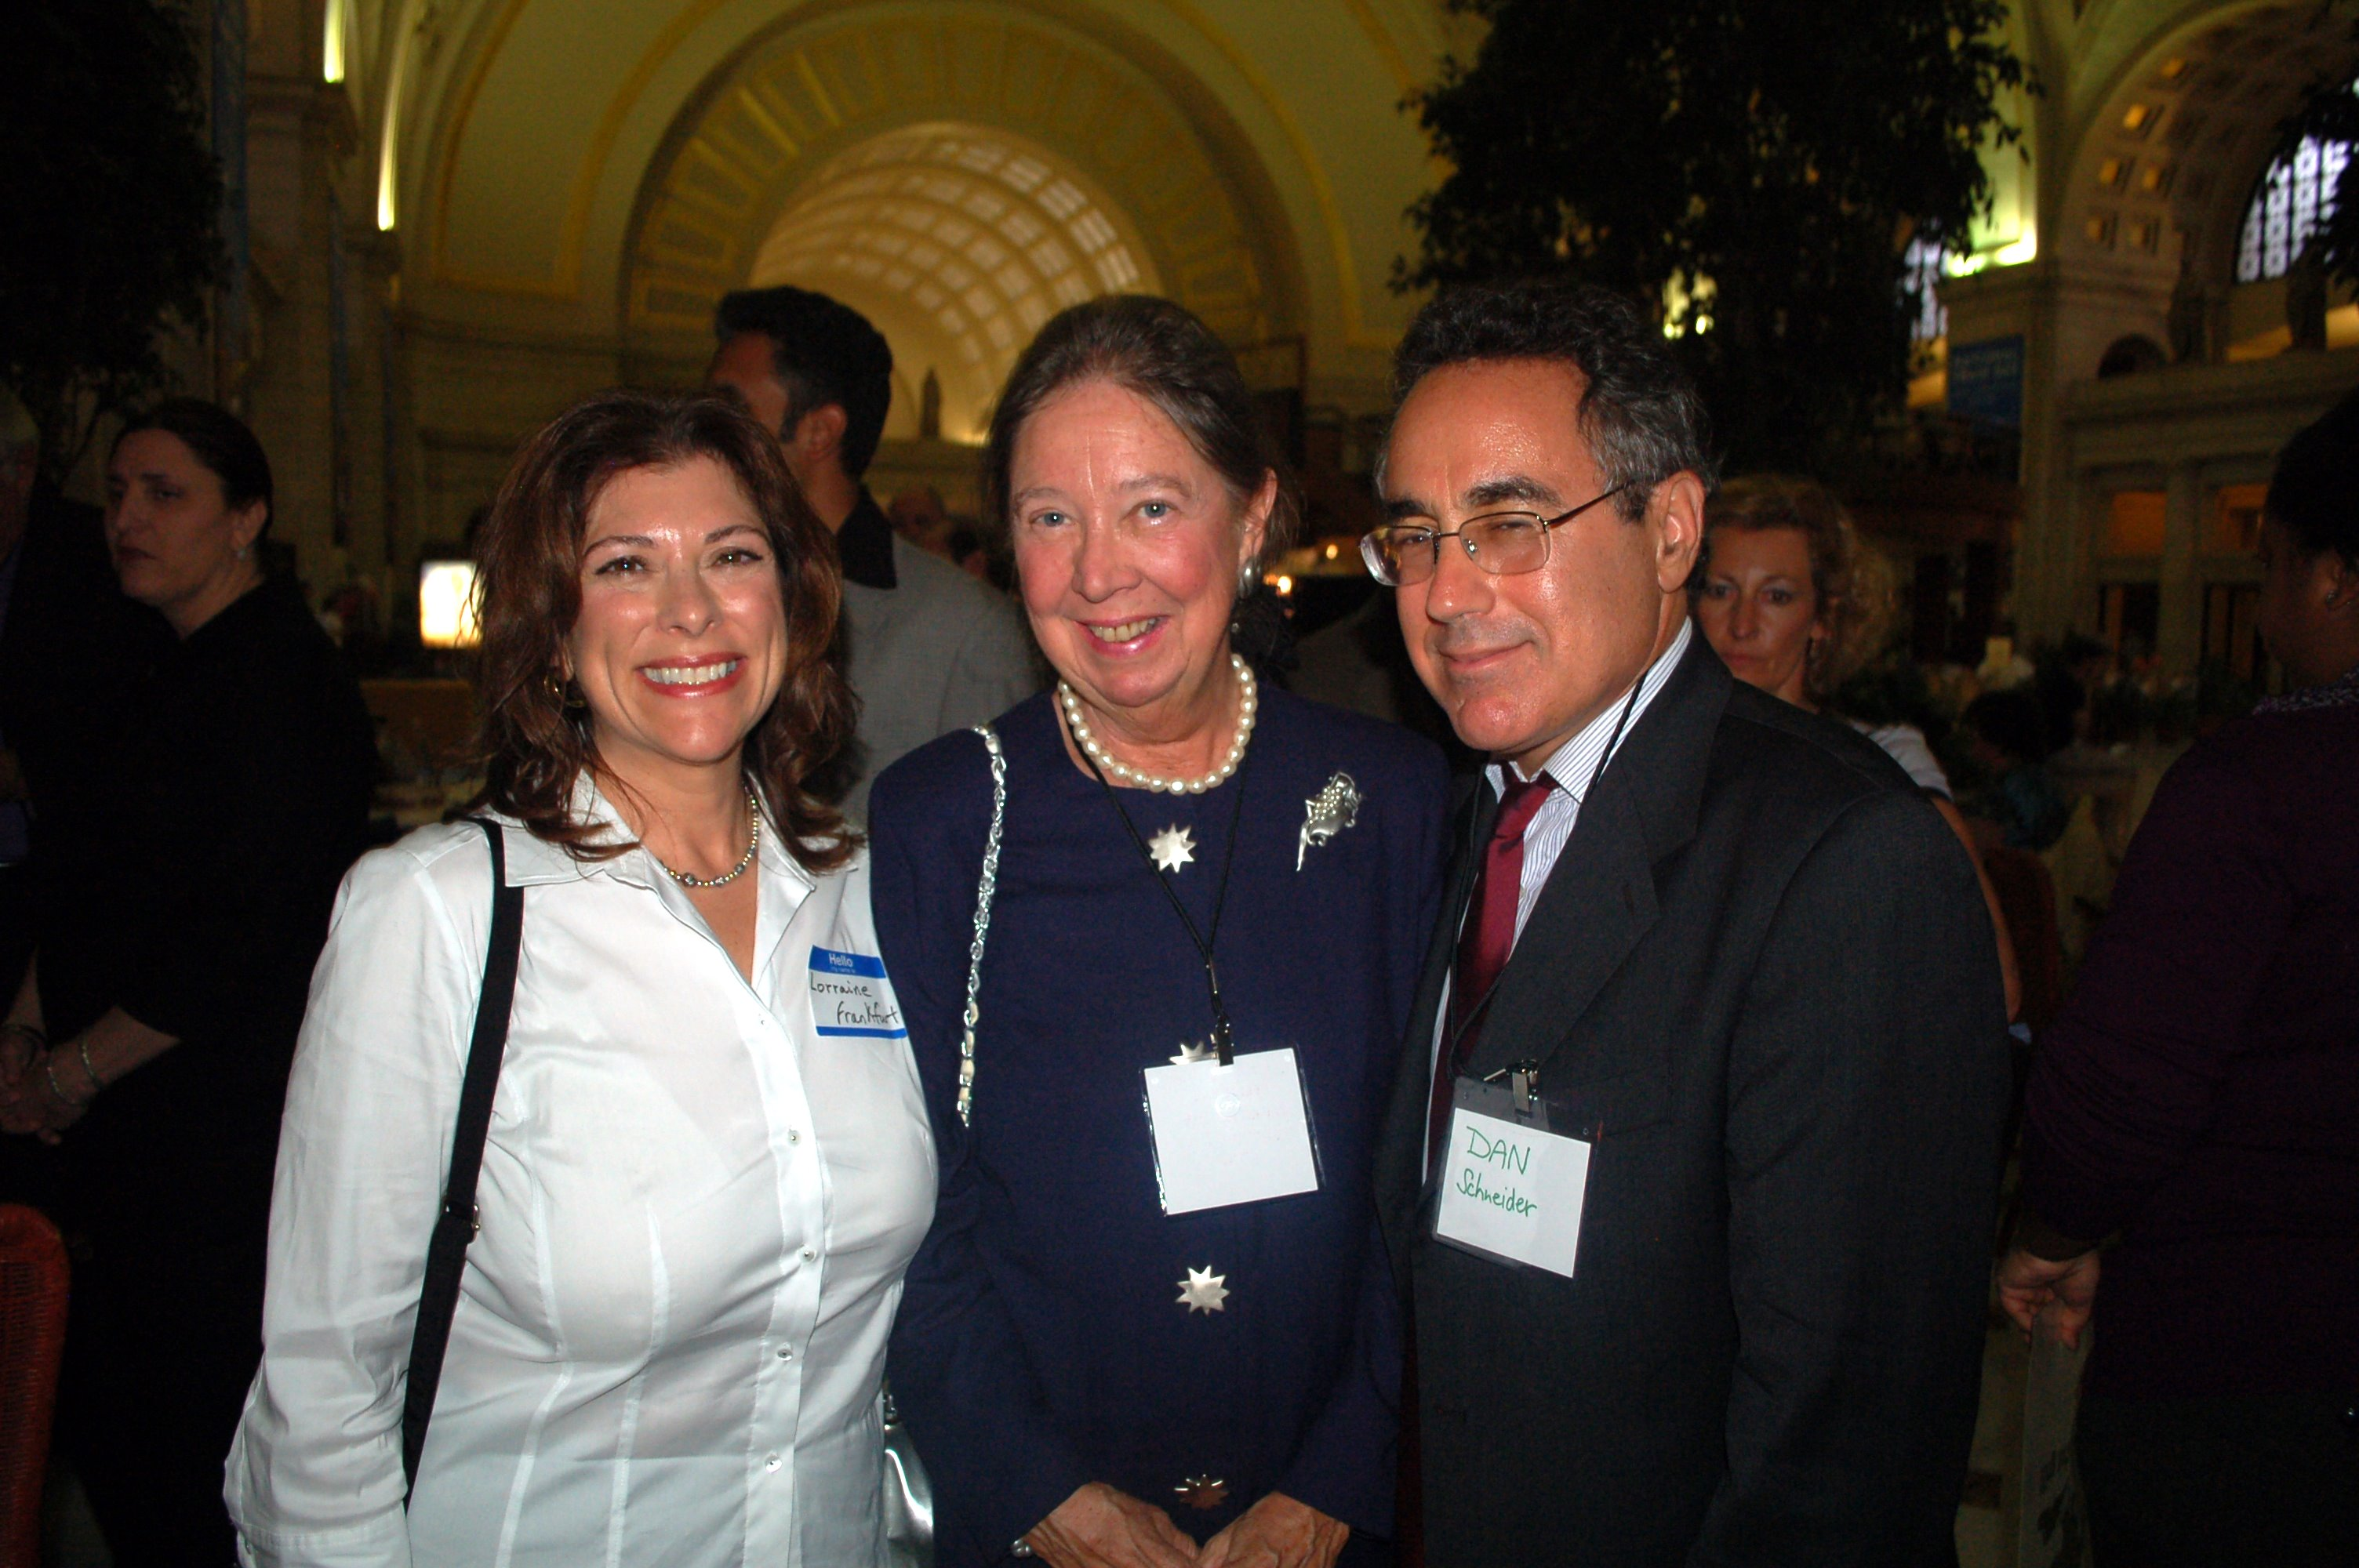 05-2010-lorraine-dan-and-nanine-in-dc.jpg